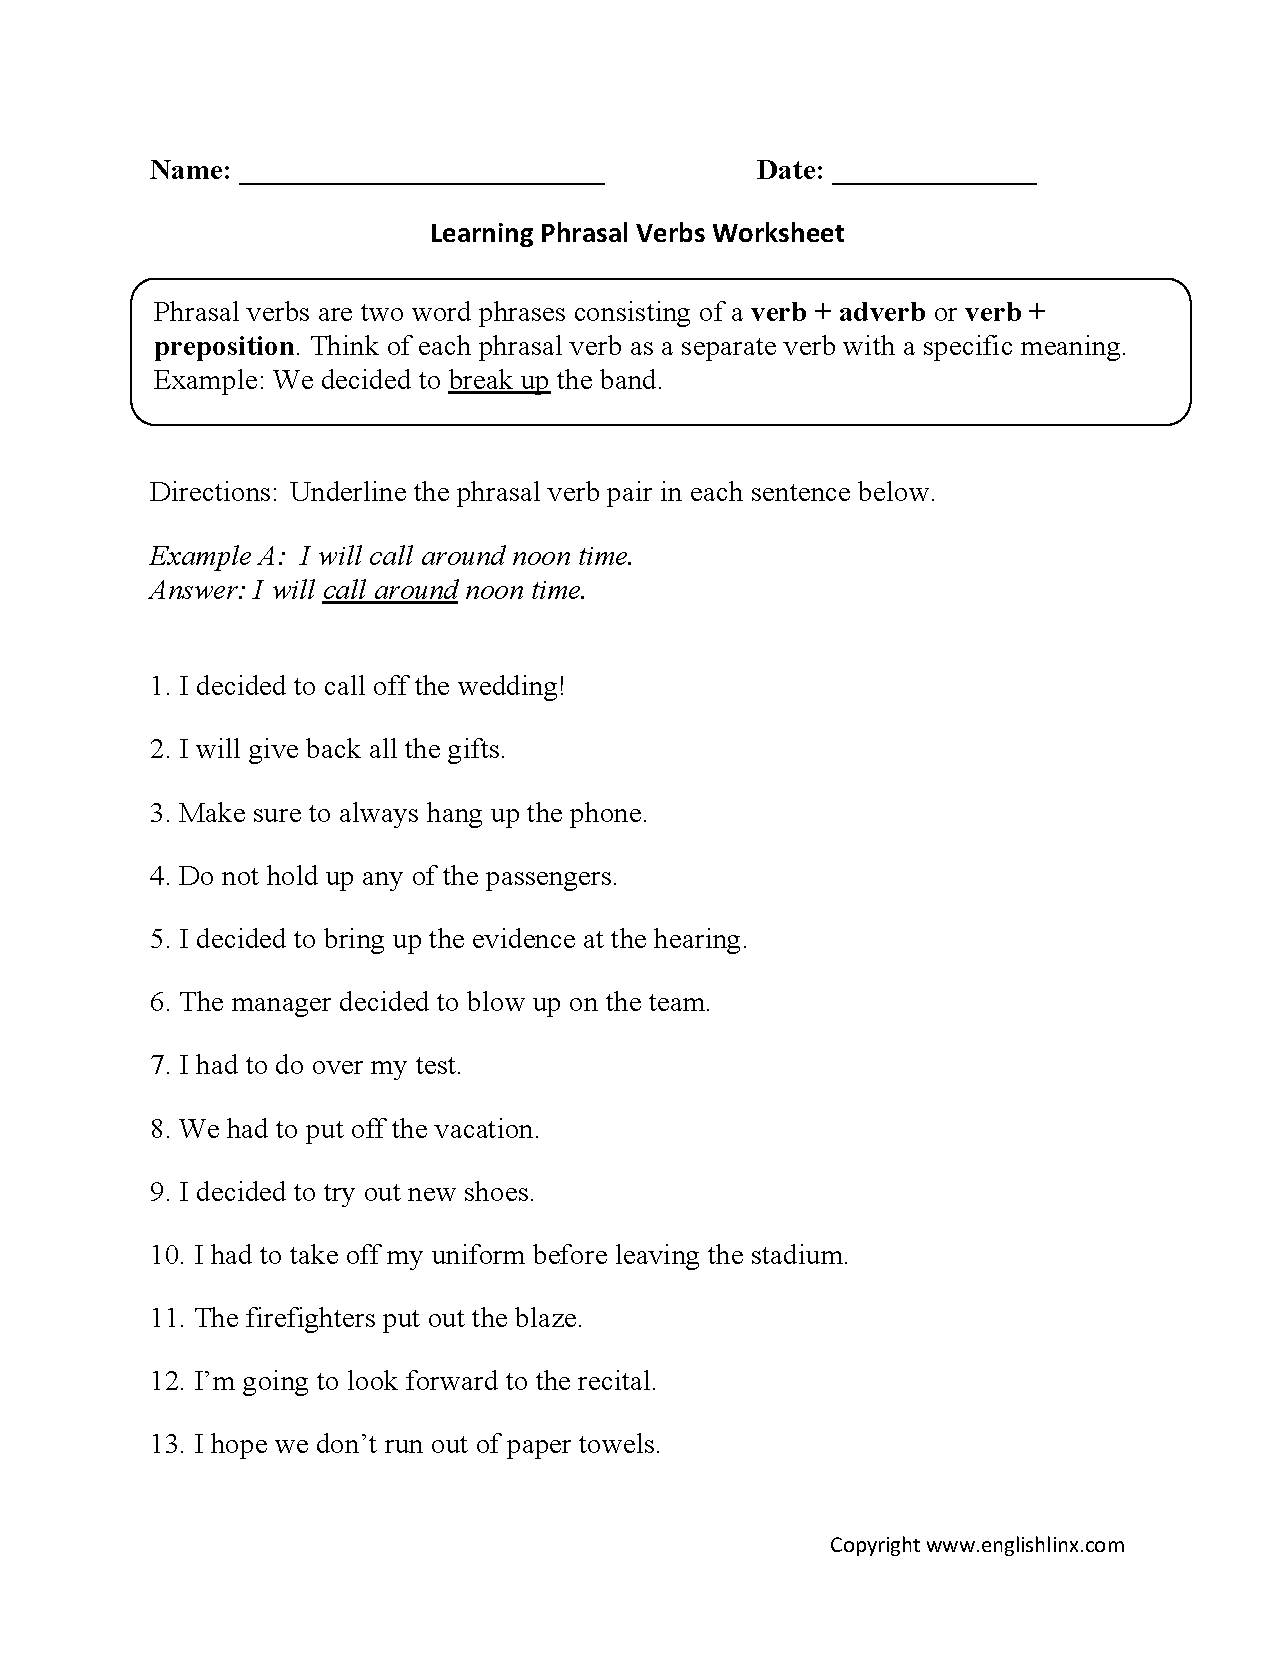 Worksheets Verb Worksheets 4th Grade verbs worksheets phrasal worksheets